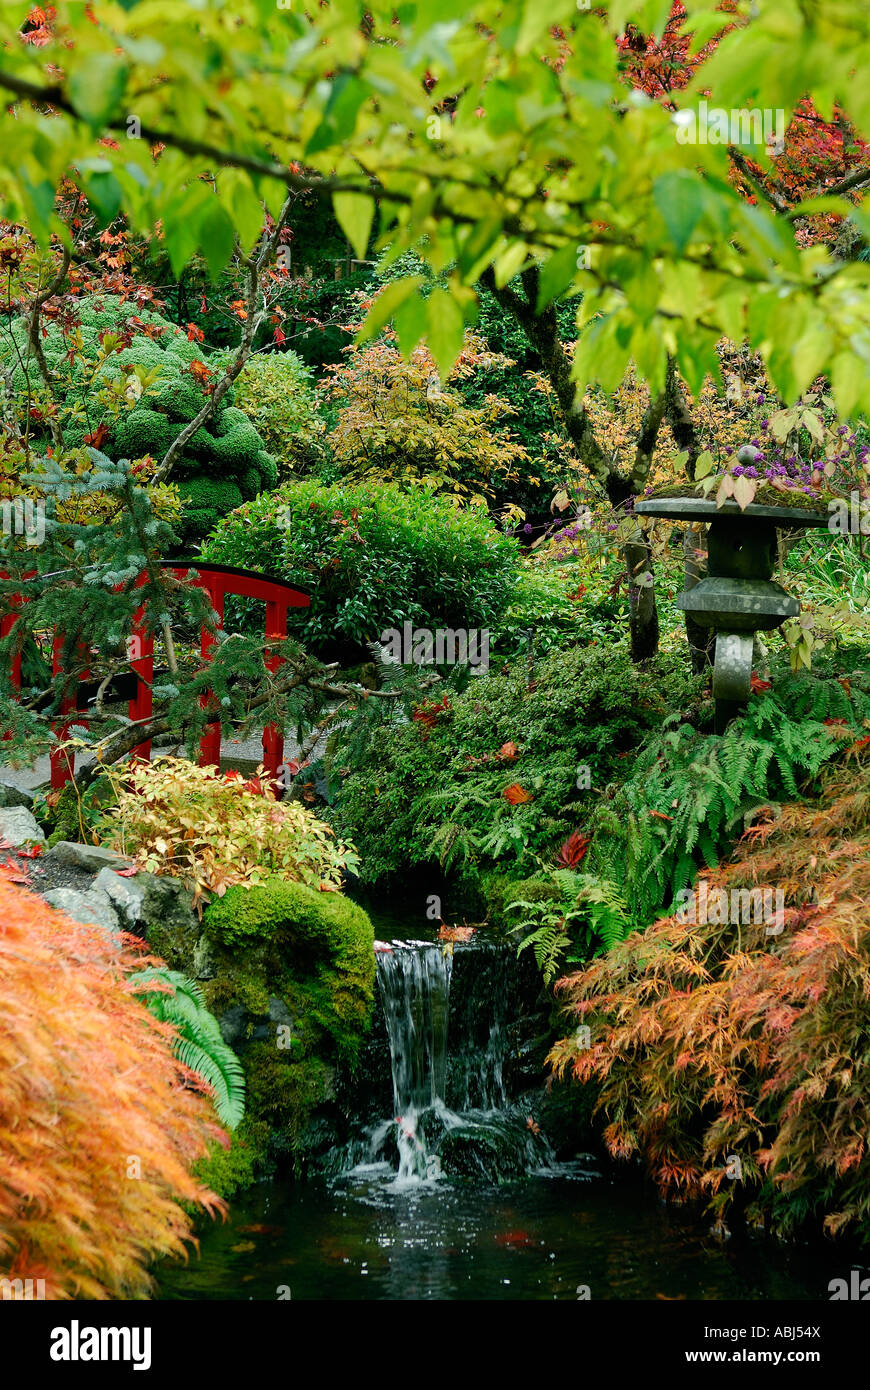 how to get to butchart gardens from vancouver